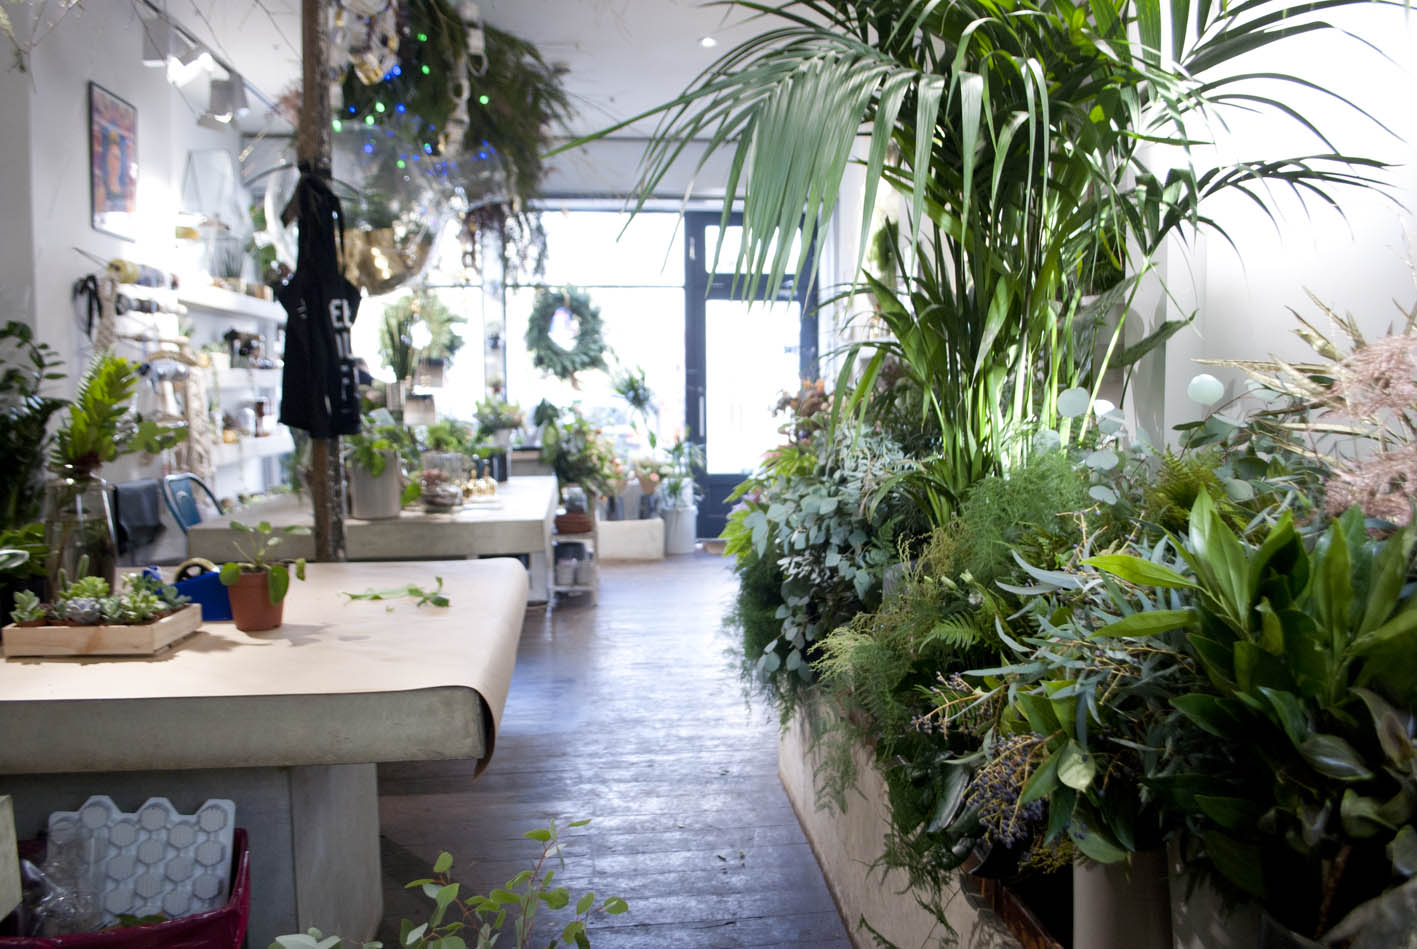 Gorgeous textures and foliage inside the shop